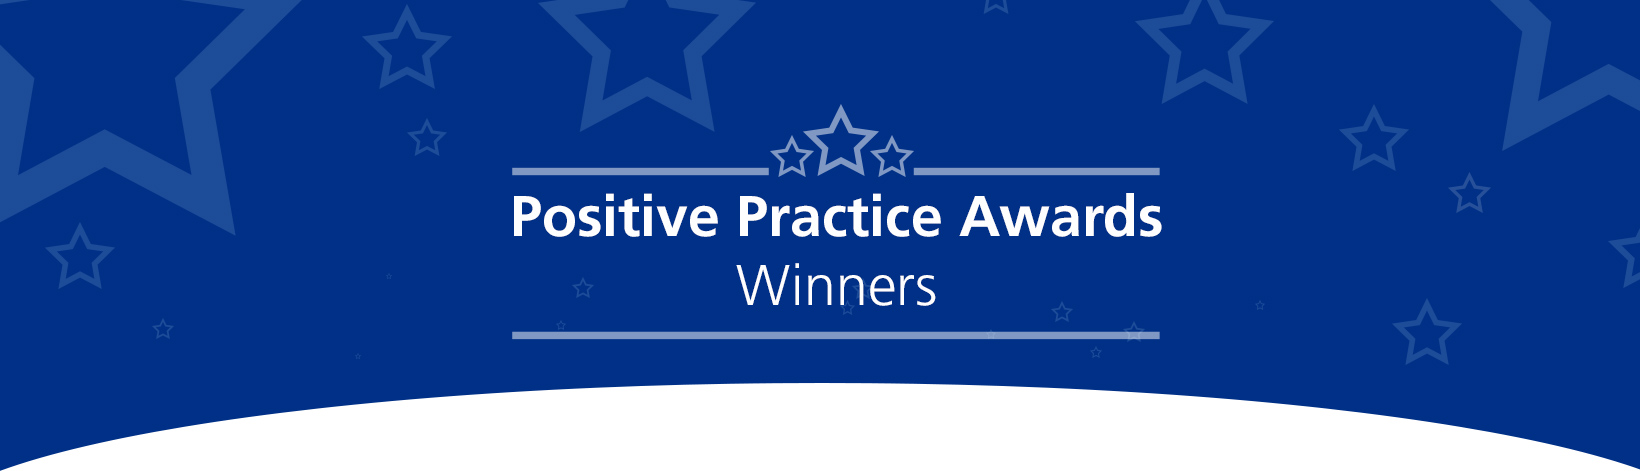 Positive Practice Awards